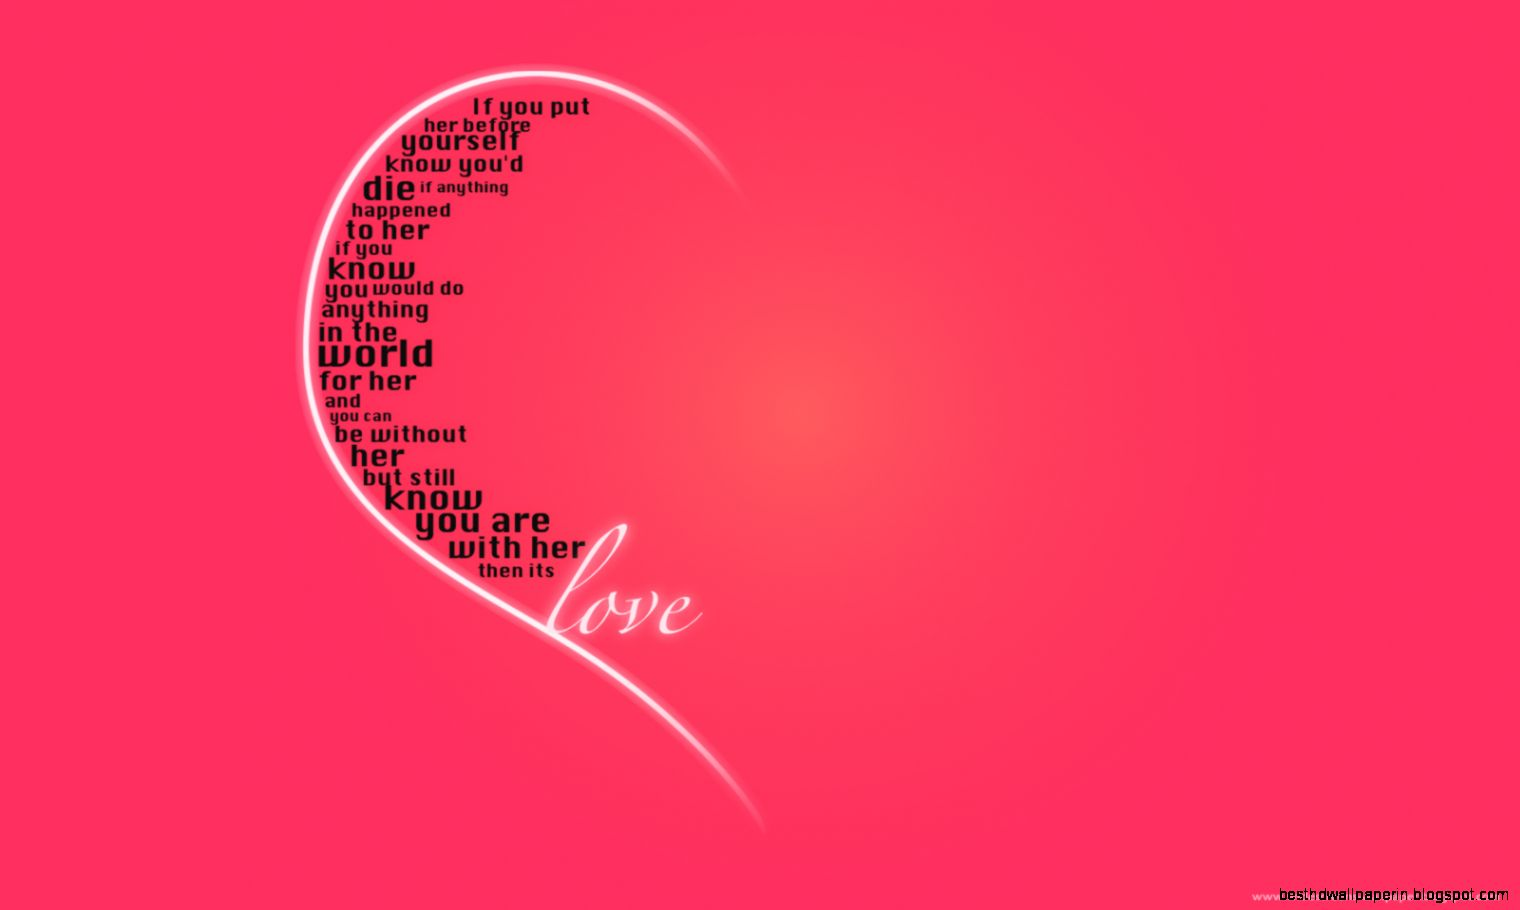 Love Words Wallpaper Hd : Love Quote Hd Desktop Backgrounds Thing Do Words You I Love You Best HD Wallpapers